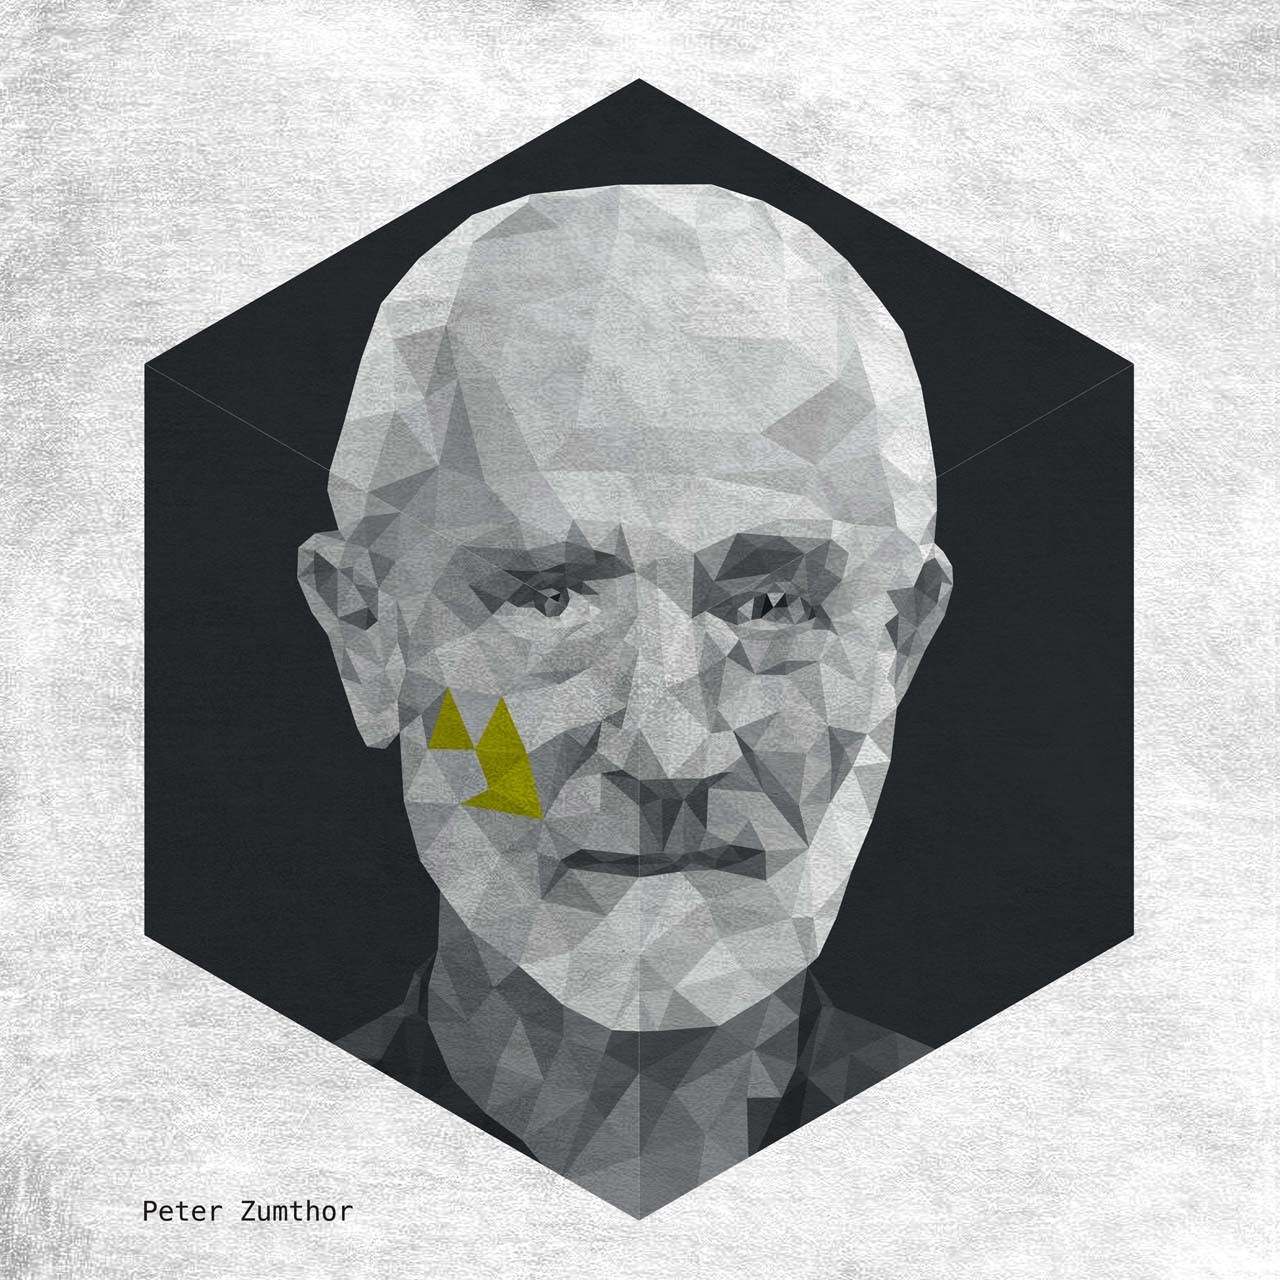 PETER ZUMTHOR. Image Courtesy of Yannick Martin